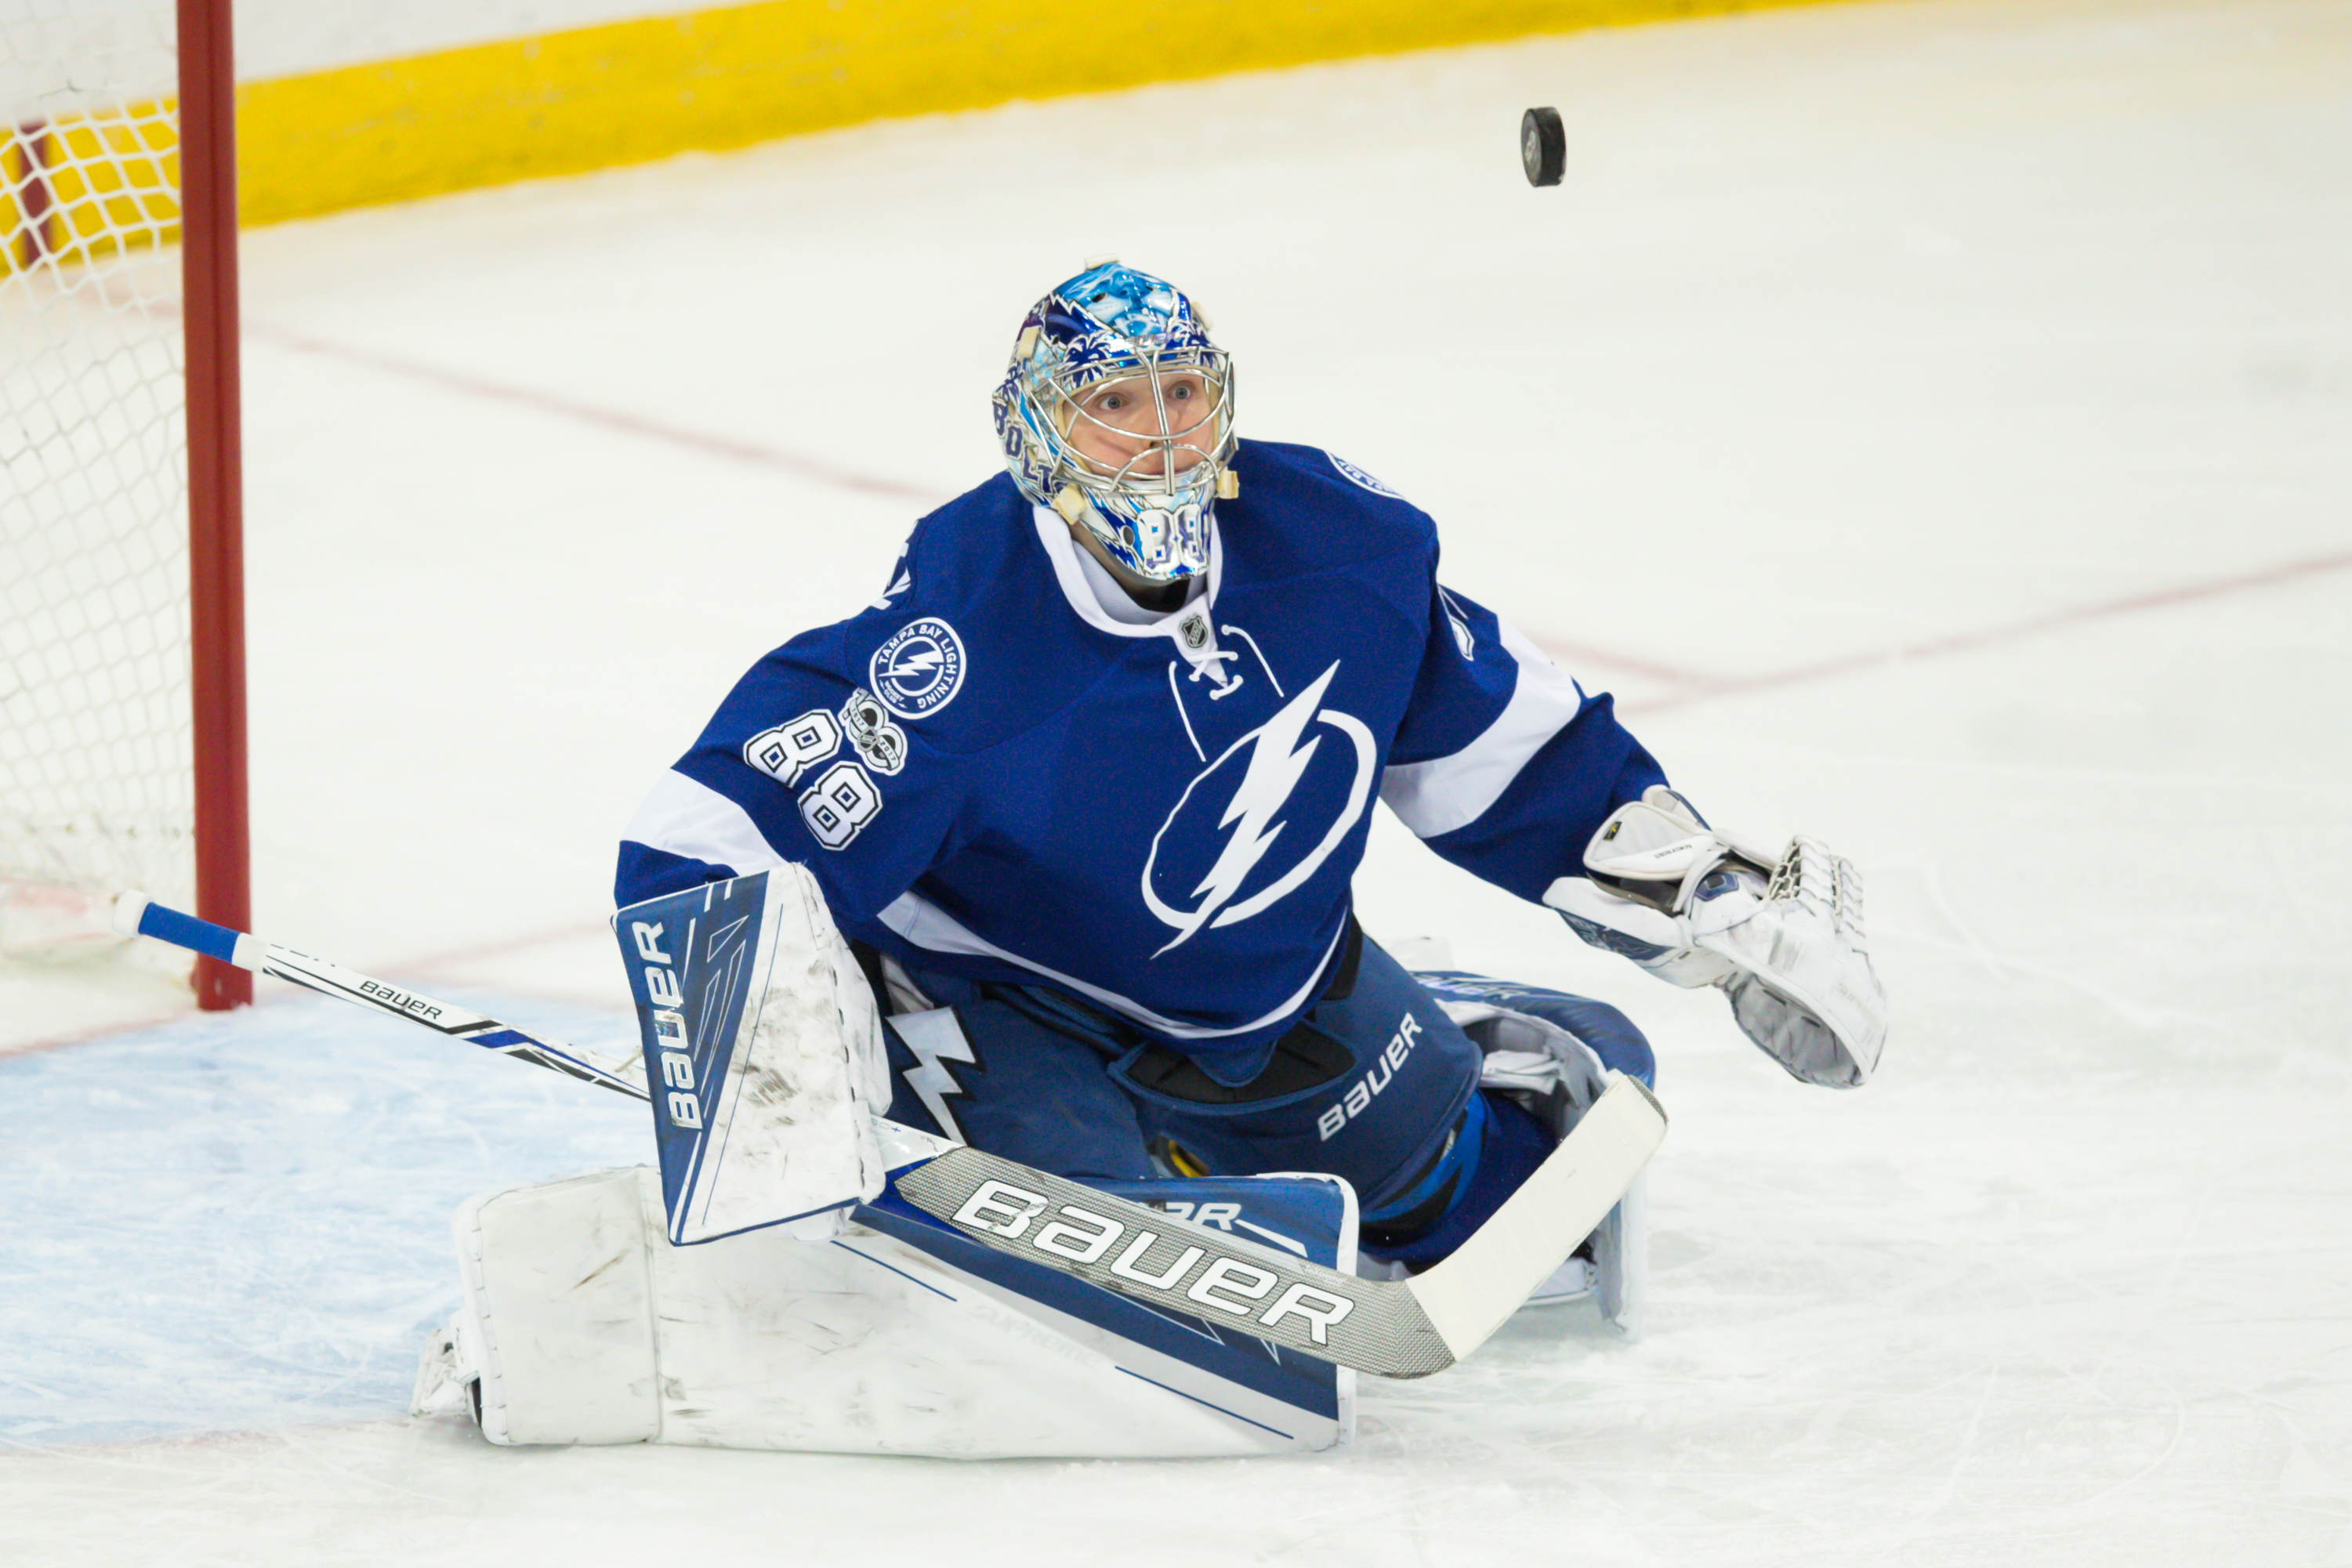 Vasilevskiy is 3-0-1 in his last four games./TRAVIS PENDERGRASS